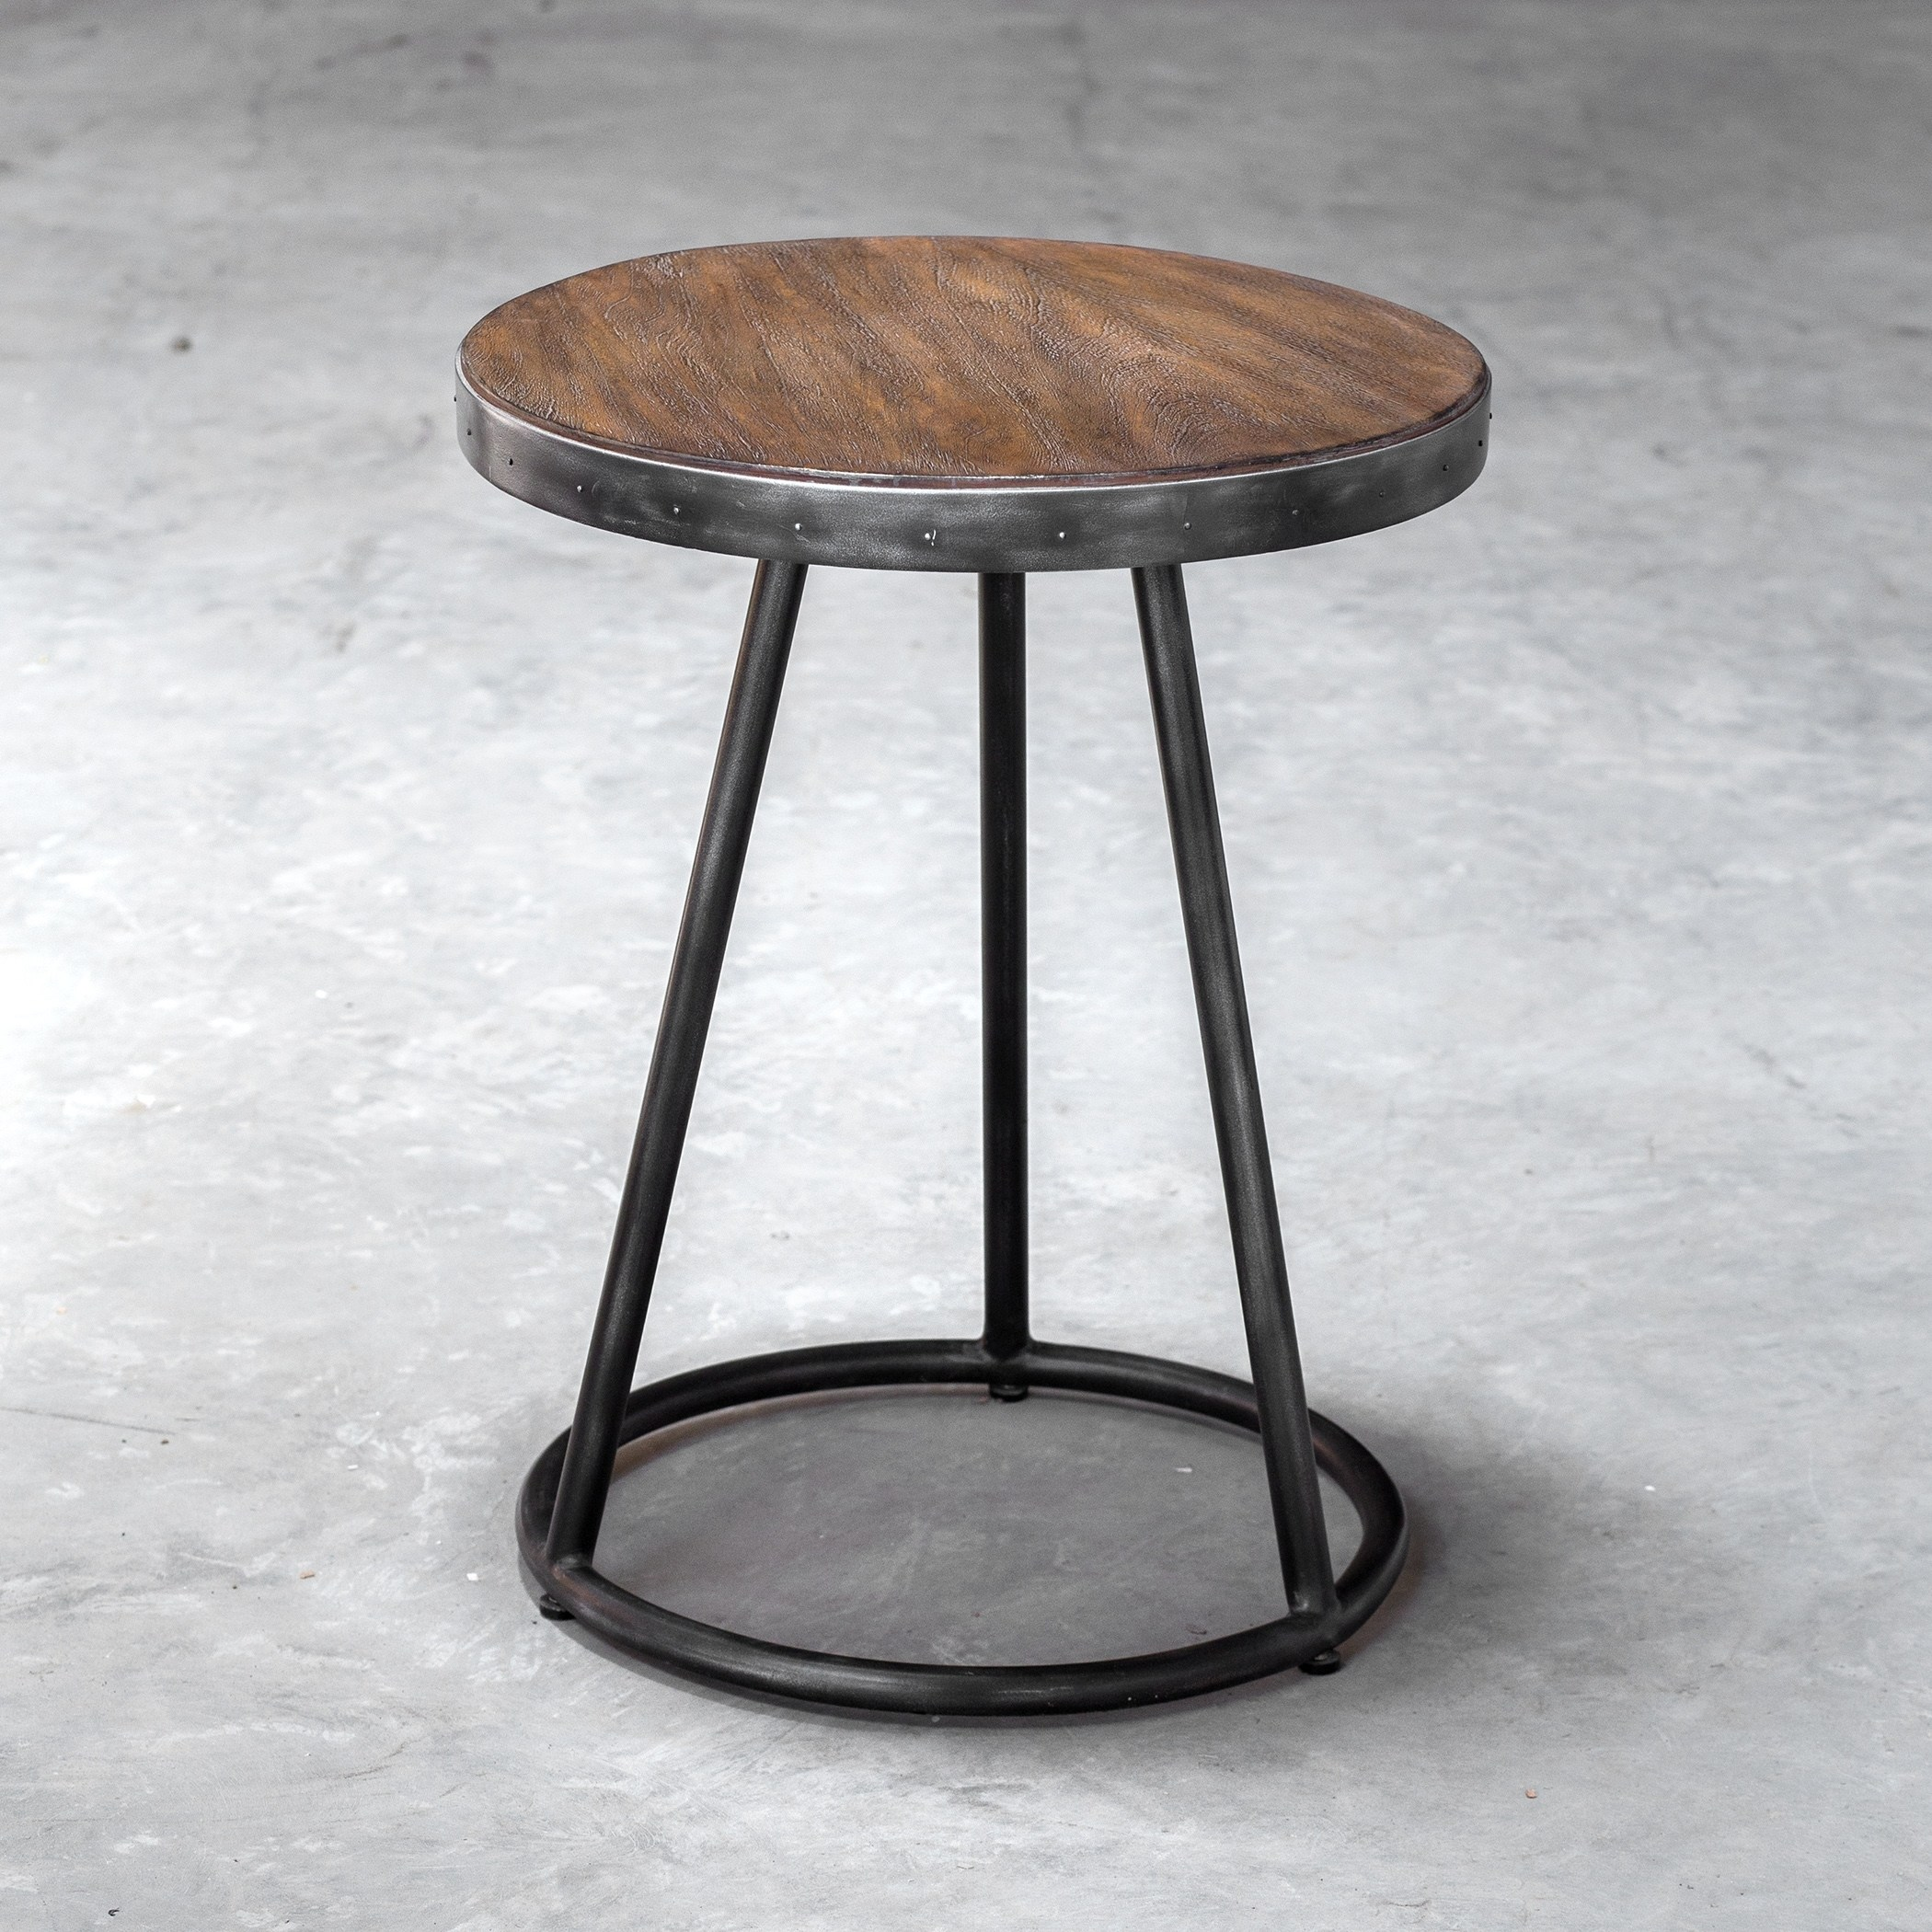 uttermost hector light grey and aged steel round accent table free shipping today orient lighting bathroom makeovers modern mirrored coffee glass iron side antique pedestal end